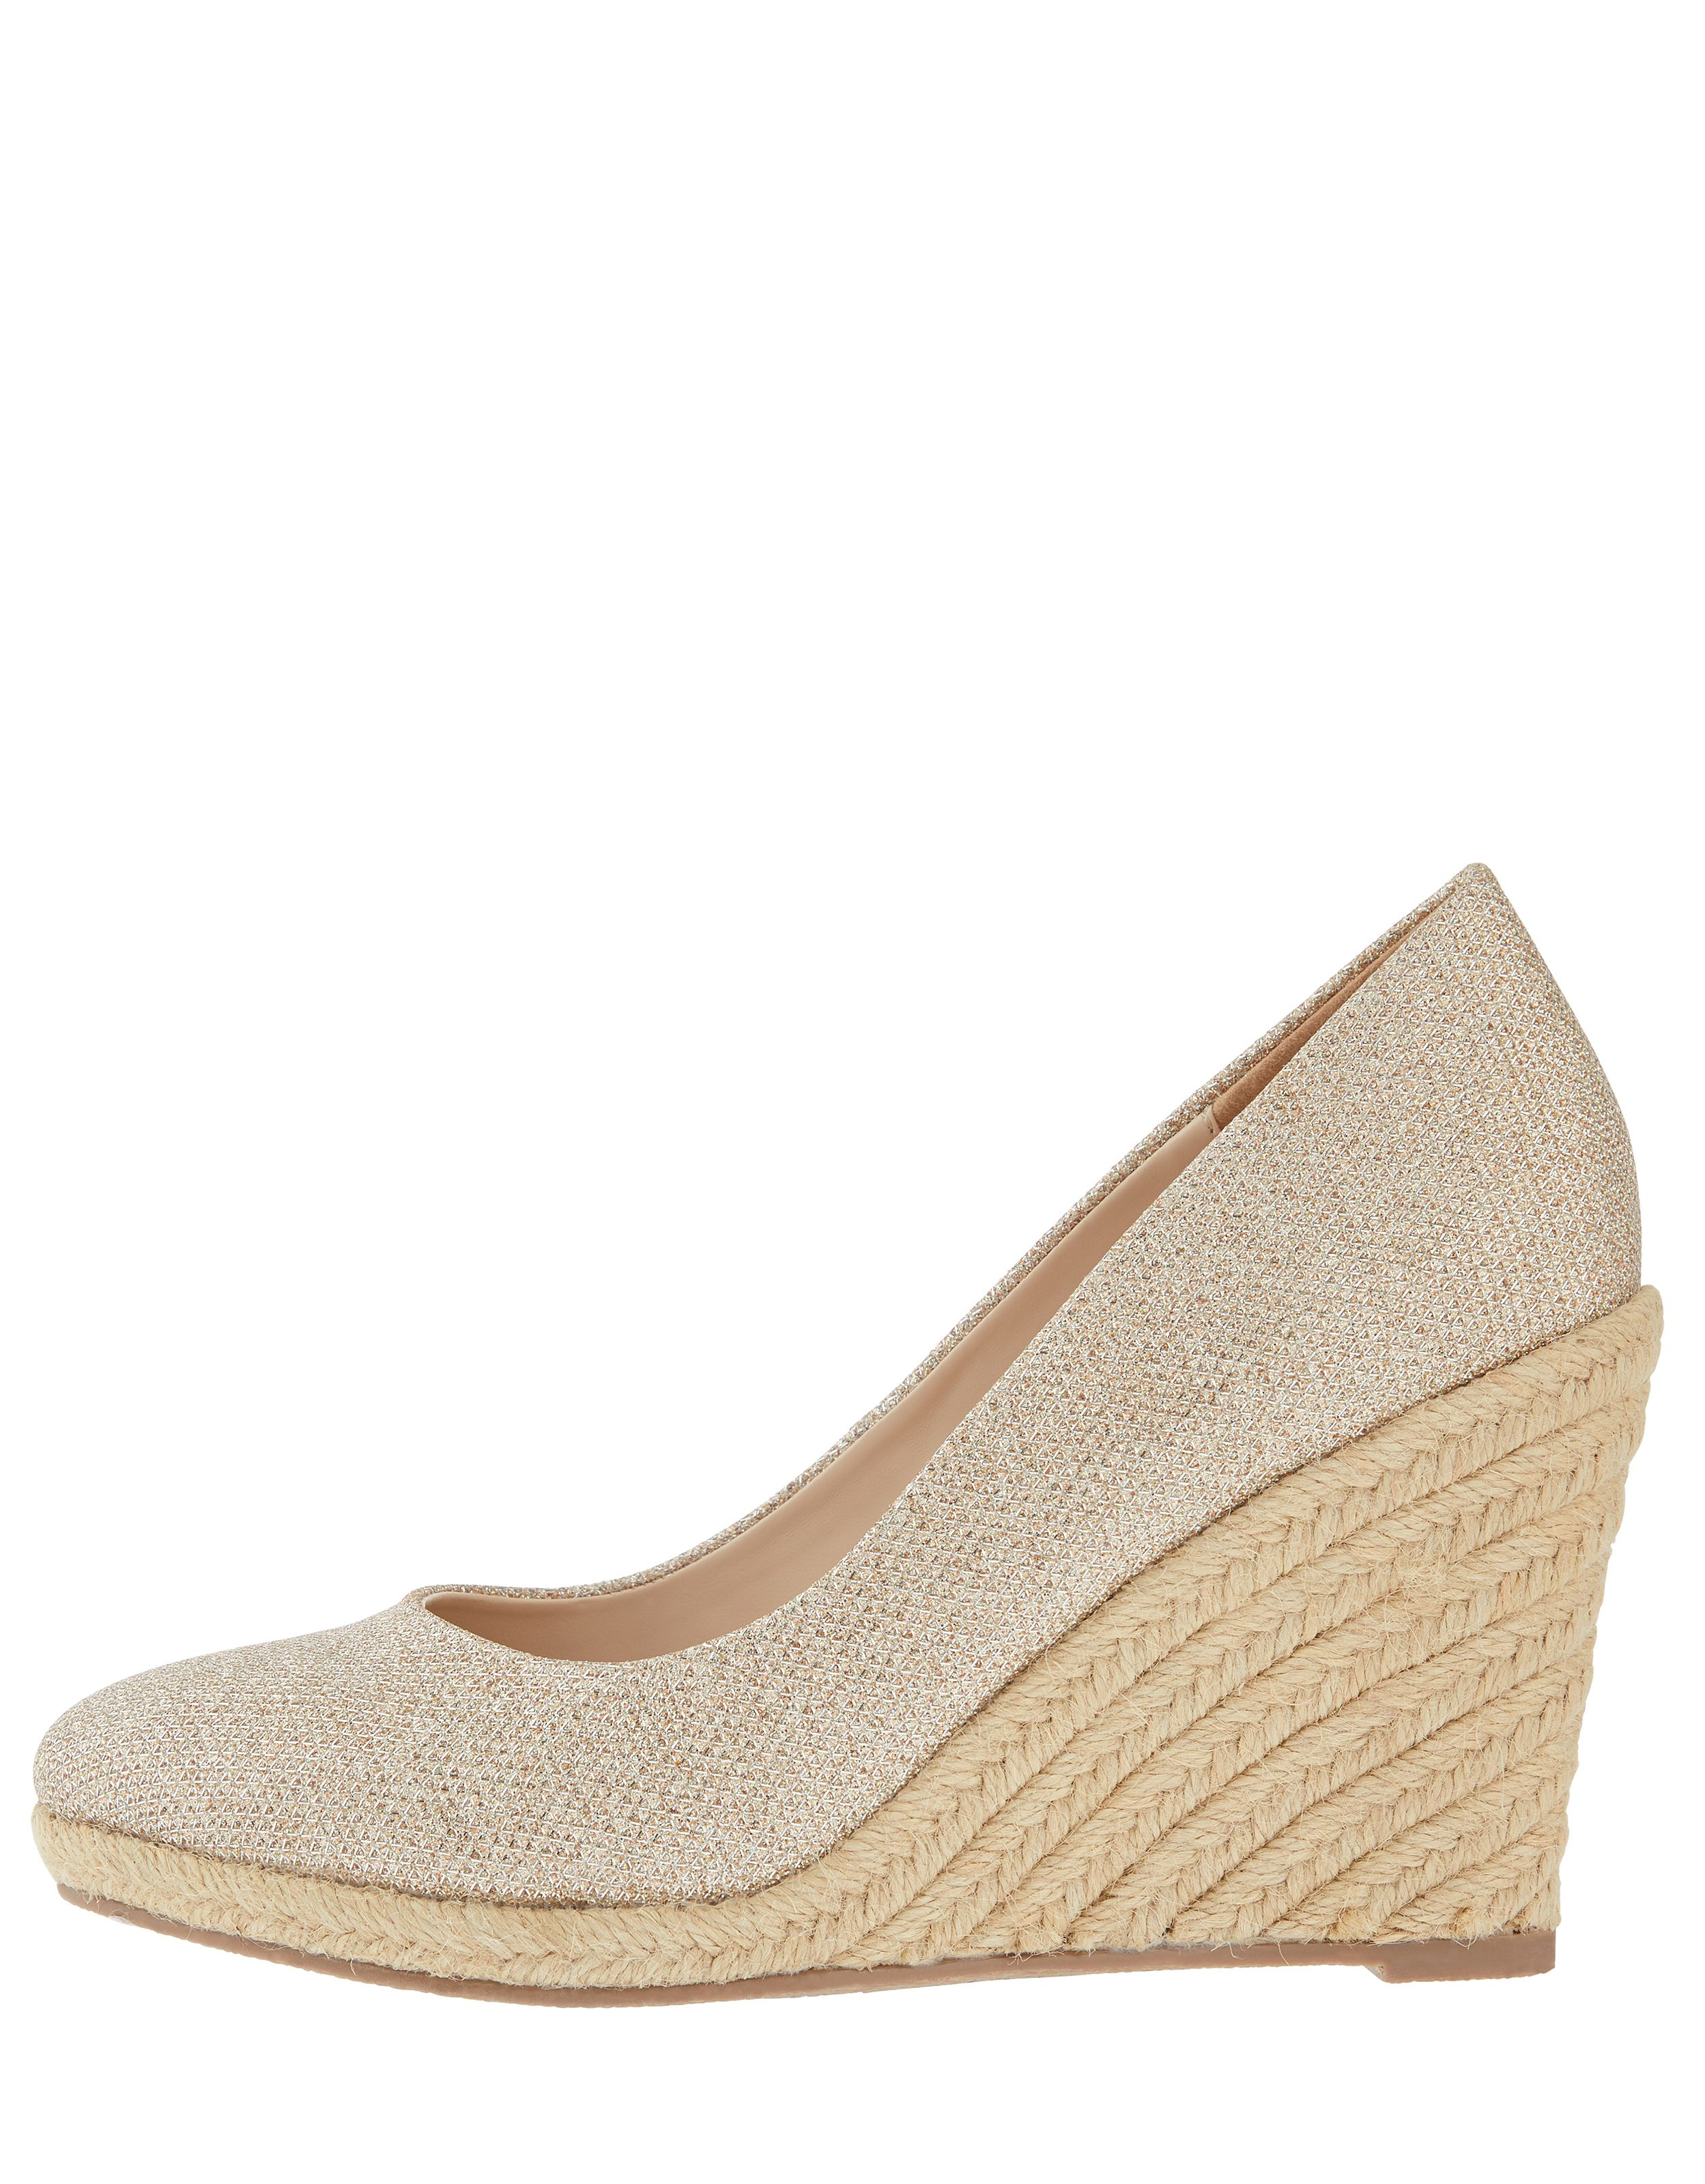 45 high street wedges are back in stock